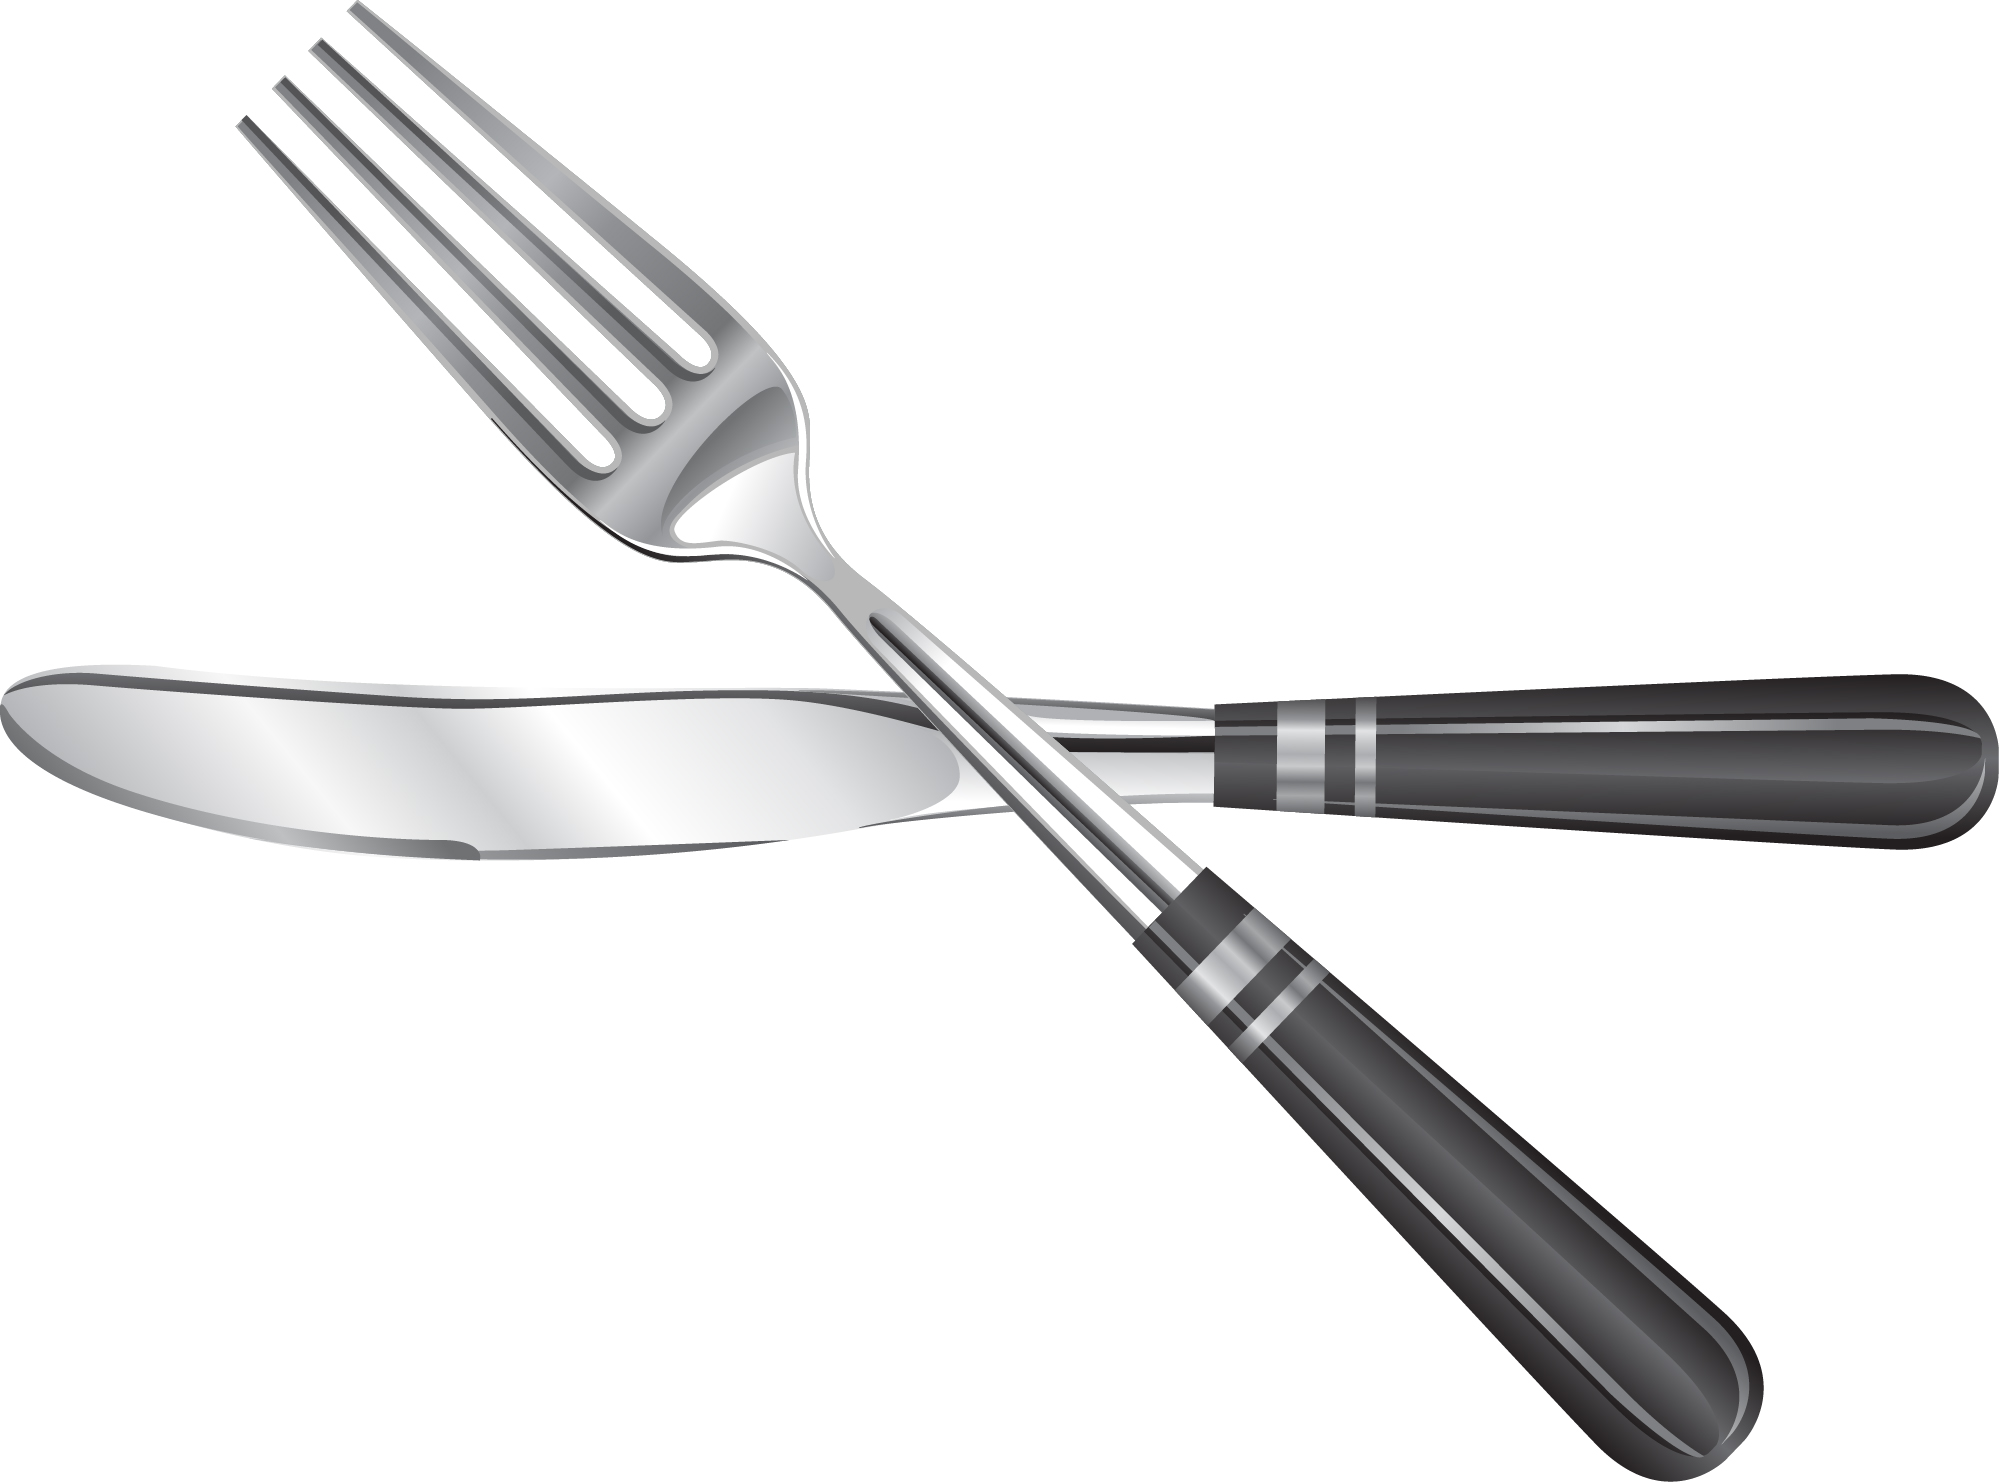 how to hold a fish knife and fork